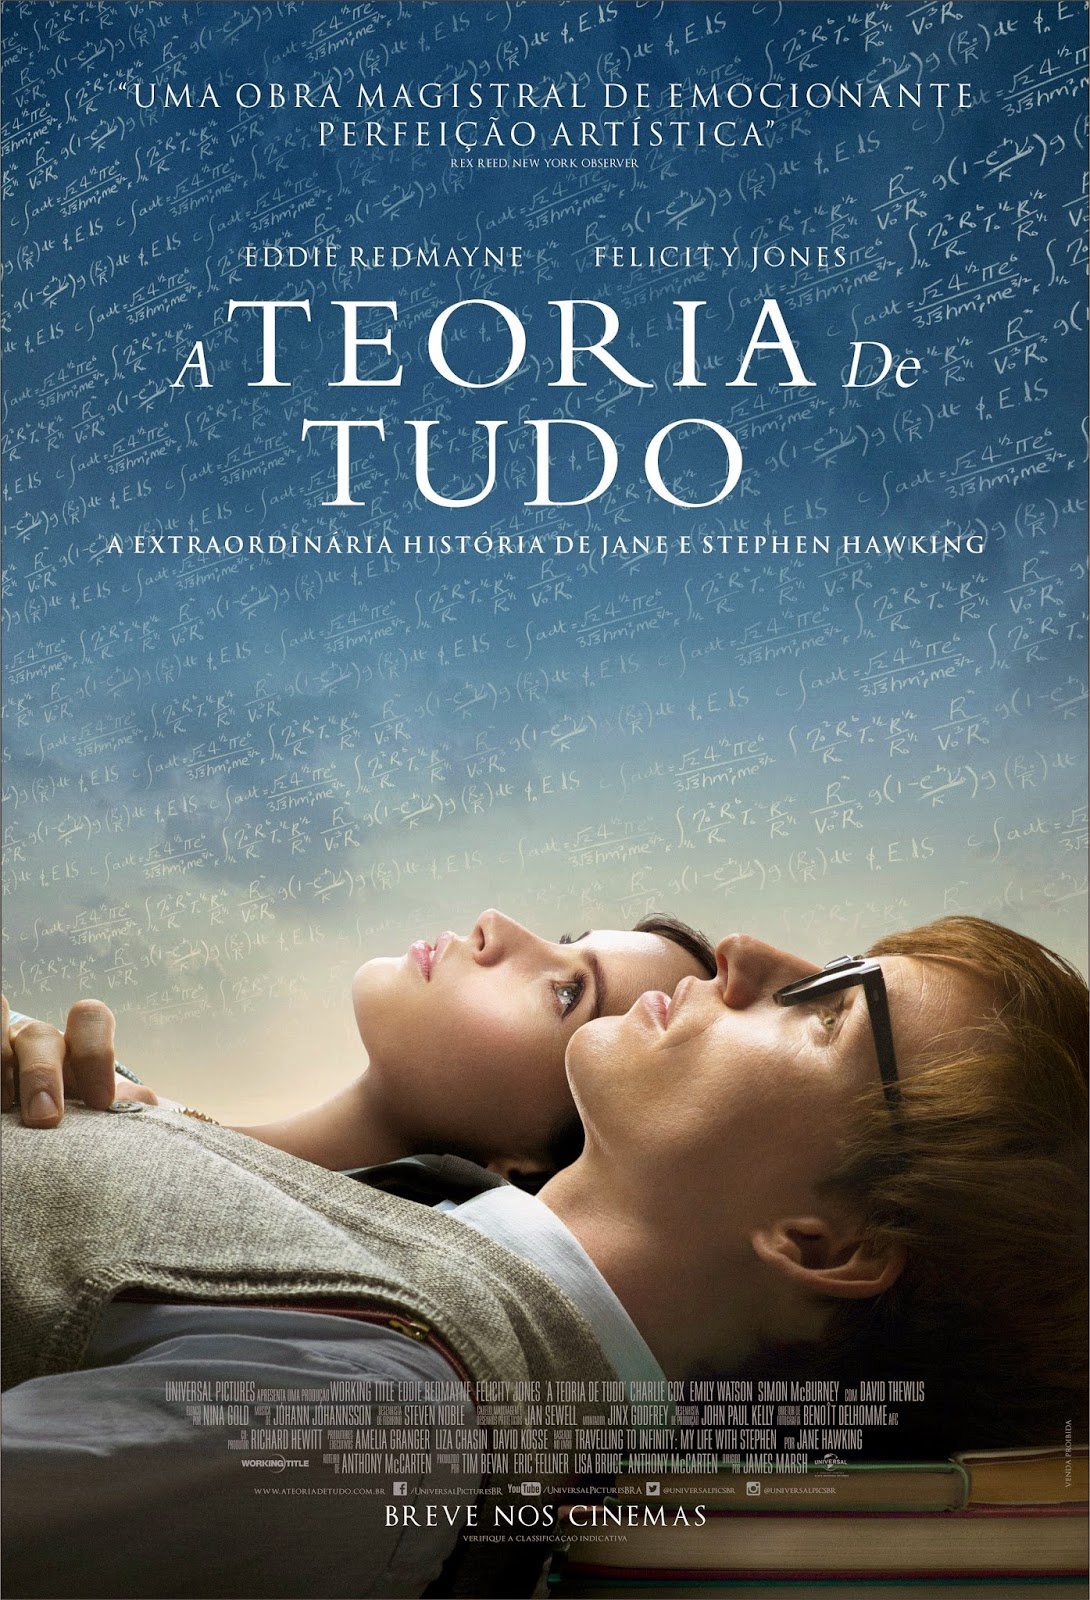 Pôster/capa/cartaz nacional de A TEORIA DE TUDO (The Theory of Everything)